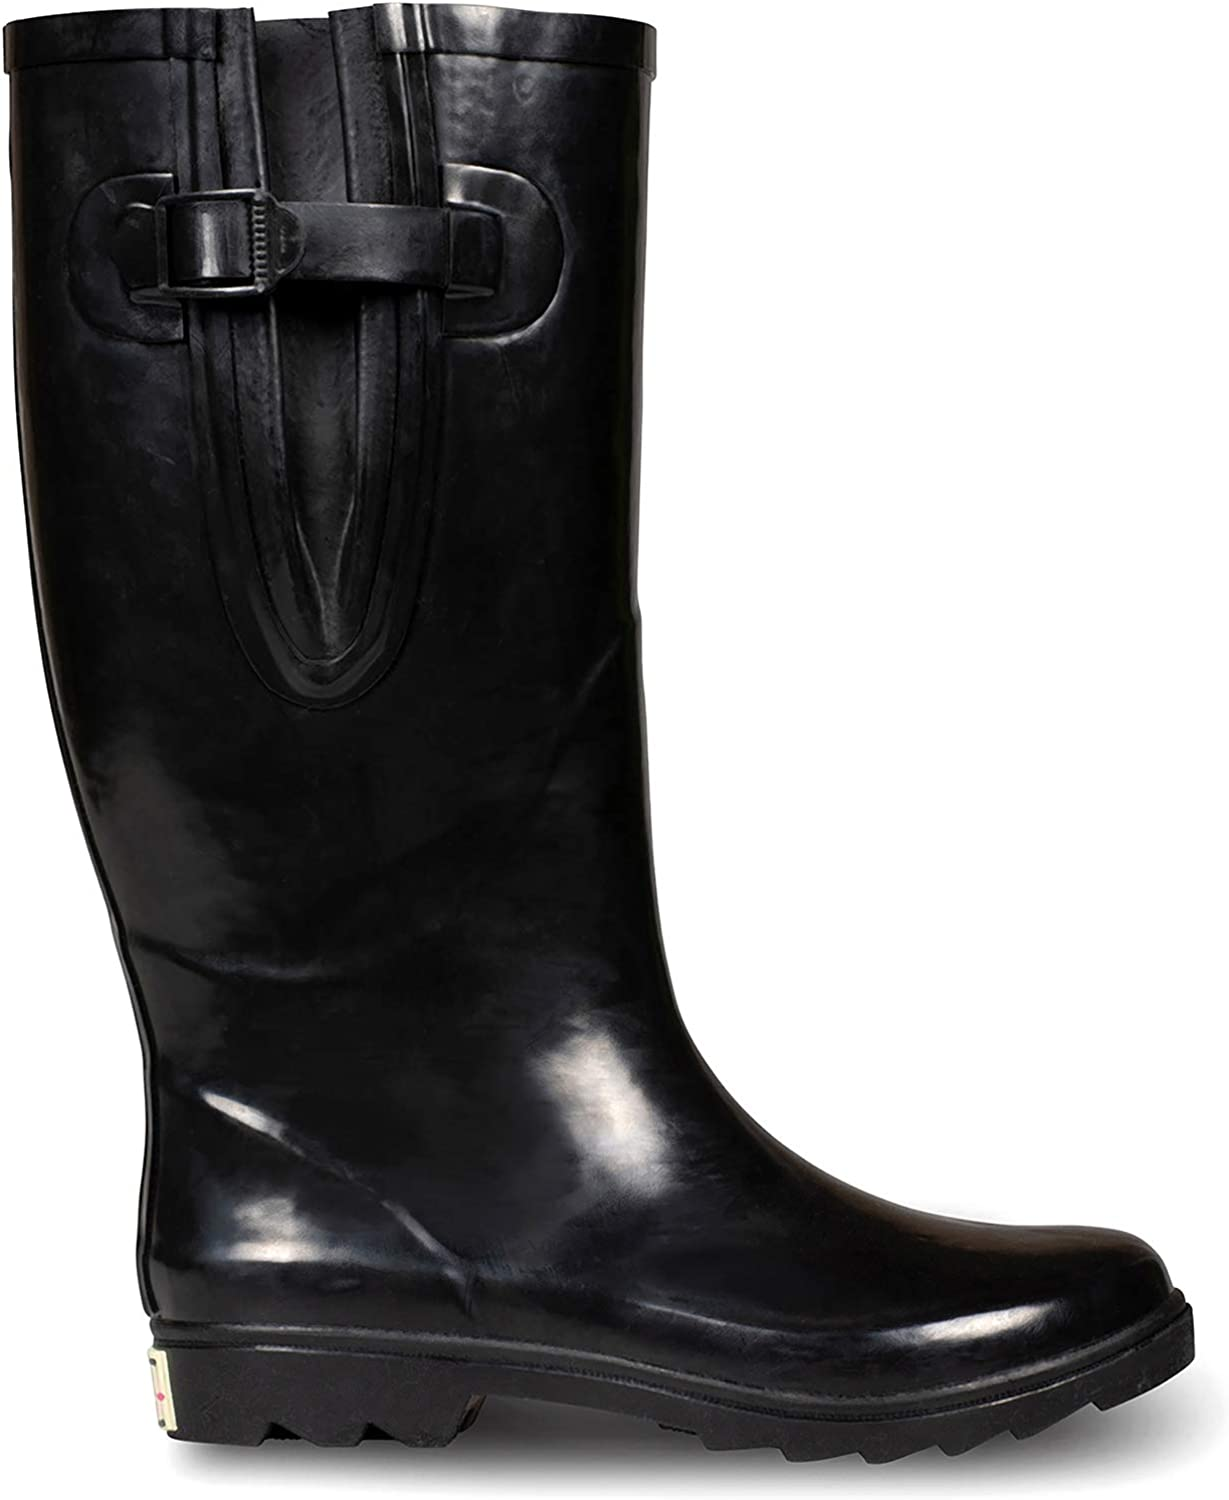 EXTRA TOUCH Wide Calf Rubber Rain Boots